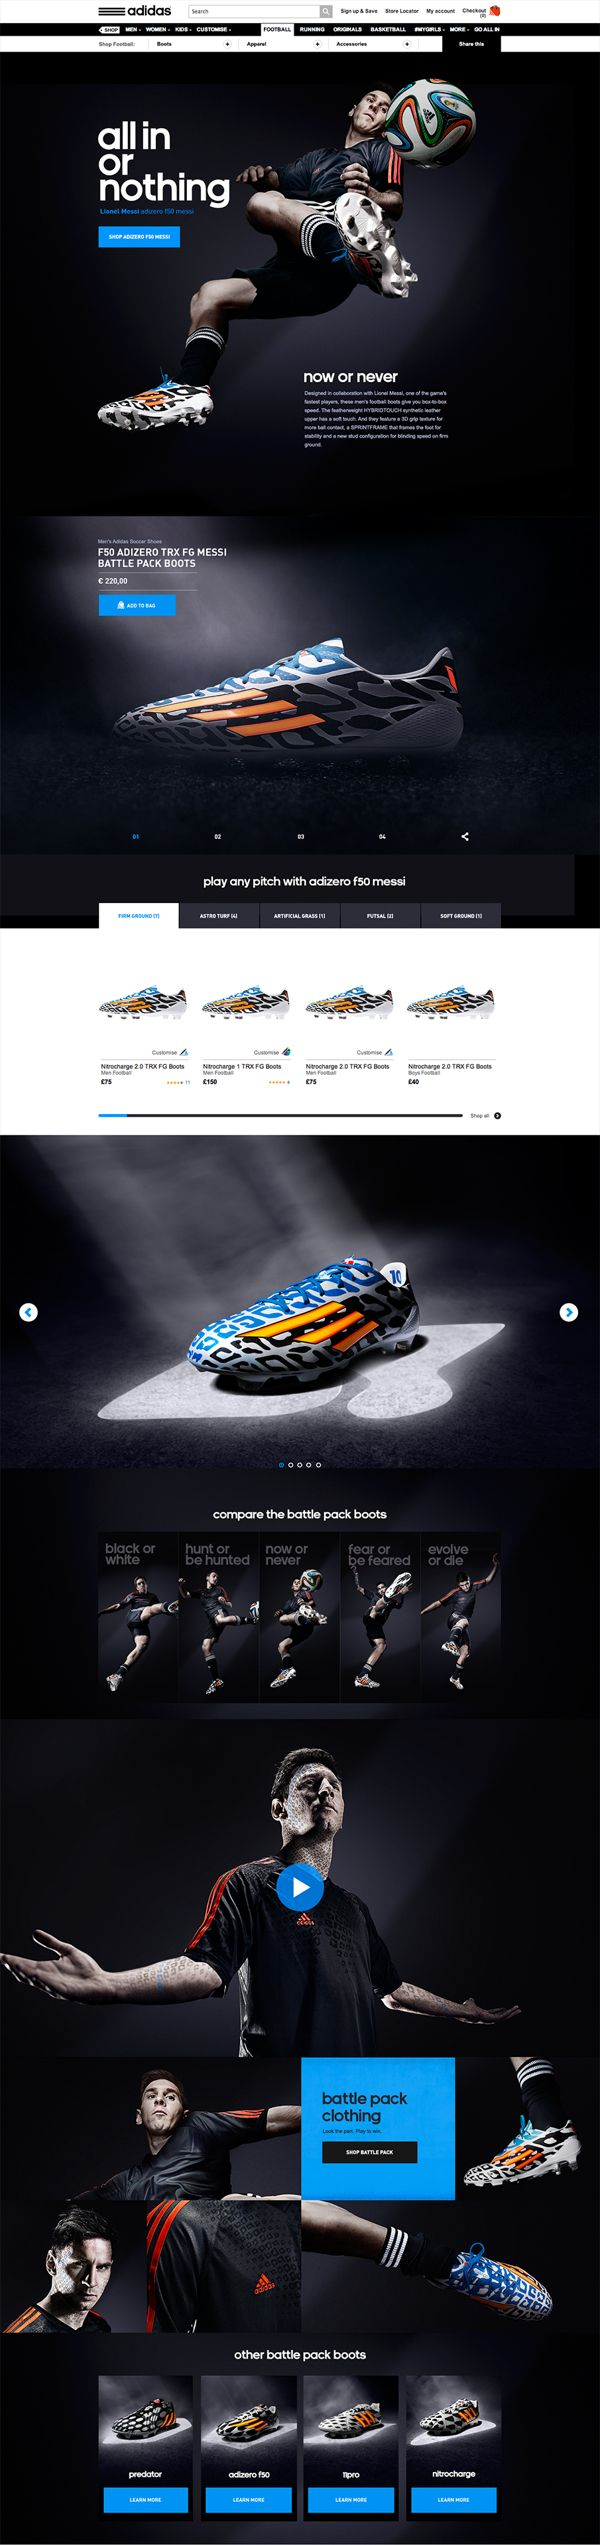 Addidas All In website featuring Lionel Messi #webdesign #worldcup